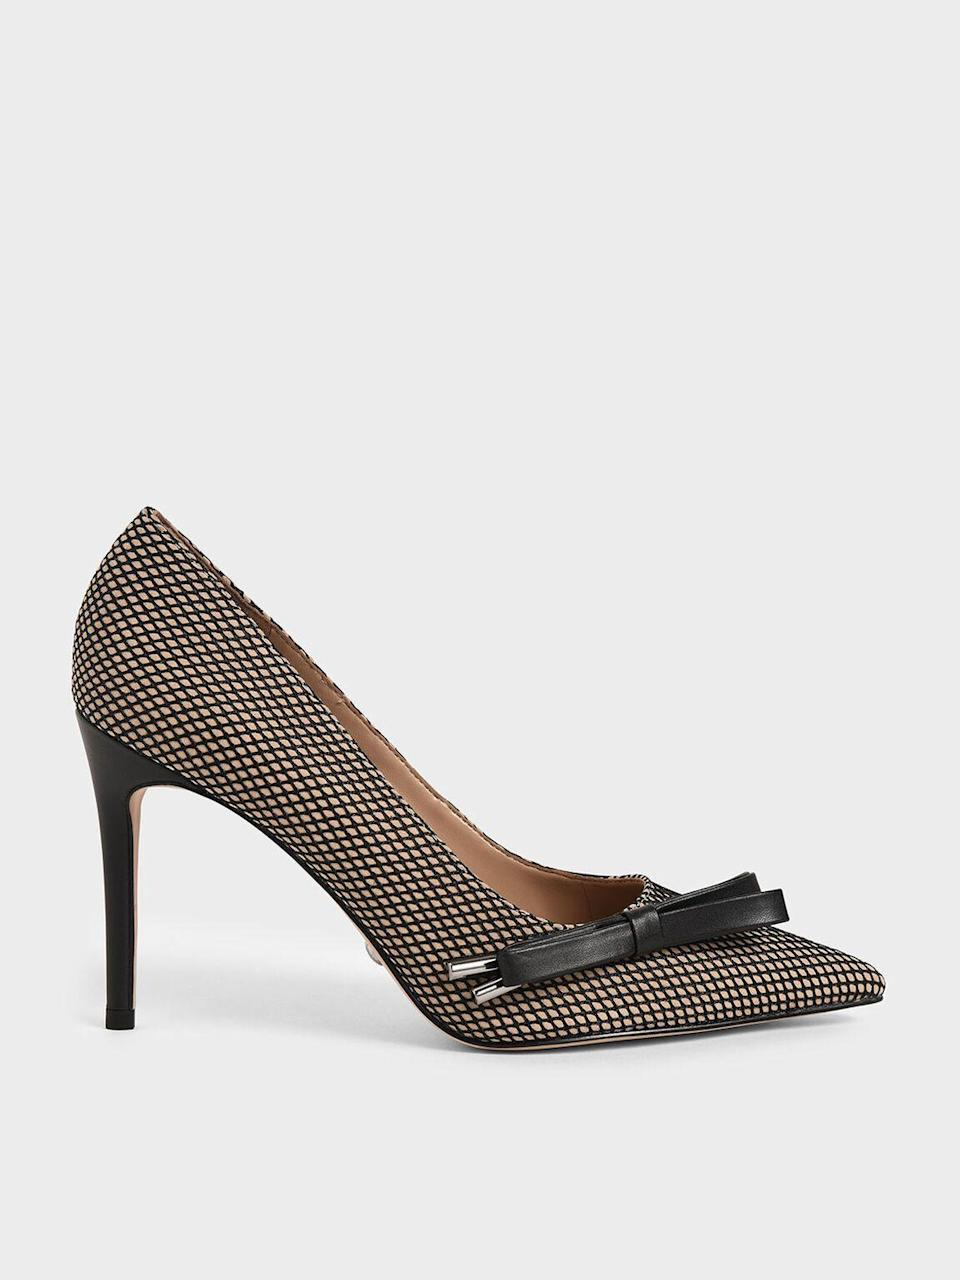 "<p><strong>Charles & Keith</strong></p><p>charleskeith.com</p><p><strong>$79.00</strong></p><p><a href=""https://go.redirectingat.com?id=74968X1596630&url=https%3A%2F%2Fwww.charleskeith.com%2Fus%2FSL1-60280353_MULTI.html&sref=https%3A%2F%2Fwww.oprahmag.com%2Fstyle%2Fg34688882%2Fnew-years-eve-outfit-ideas%2F"" rel=""nofollow noopener"" target=""_blank"" data-ylk=""slk:SHOP NOW"" class=""link rapid-noclick-resp"">SHOP NOW</a></p>"